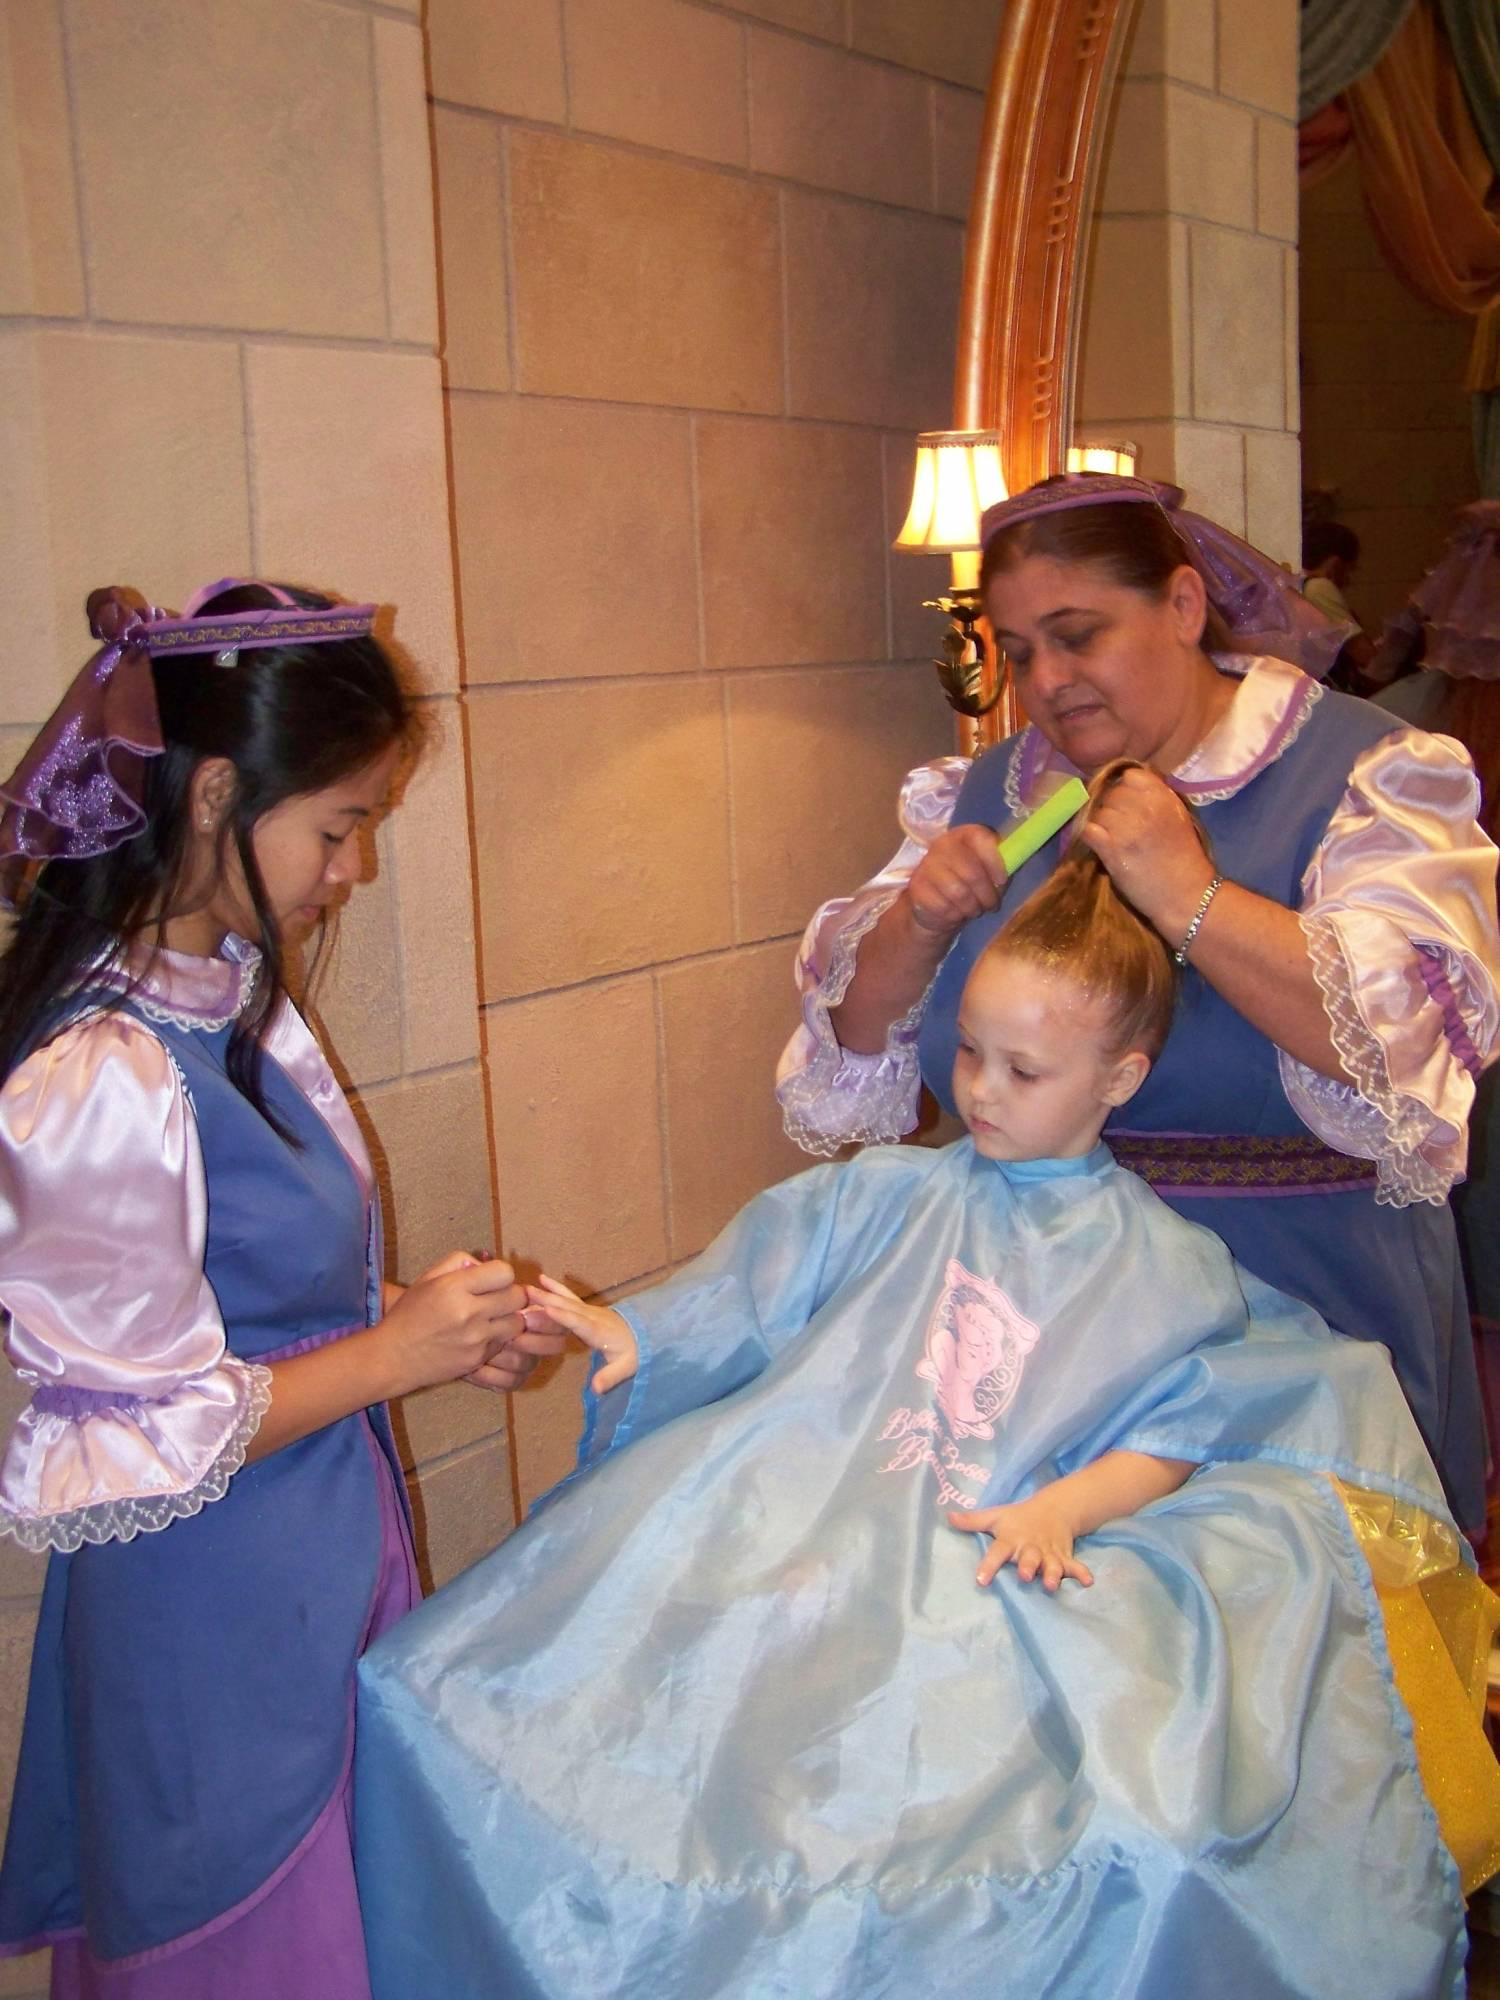 Even 'older' princesses enjoy the Bibbidi Bobbidi Boutique |PassPorter.com